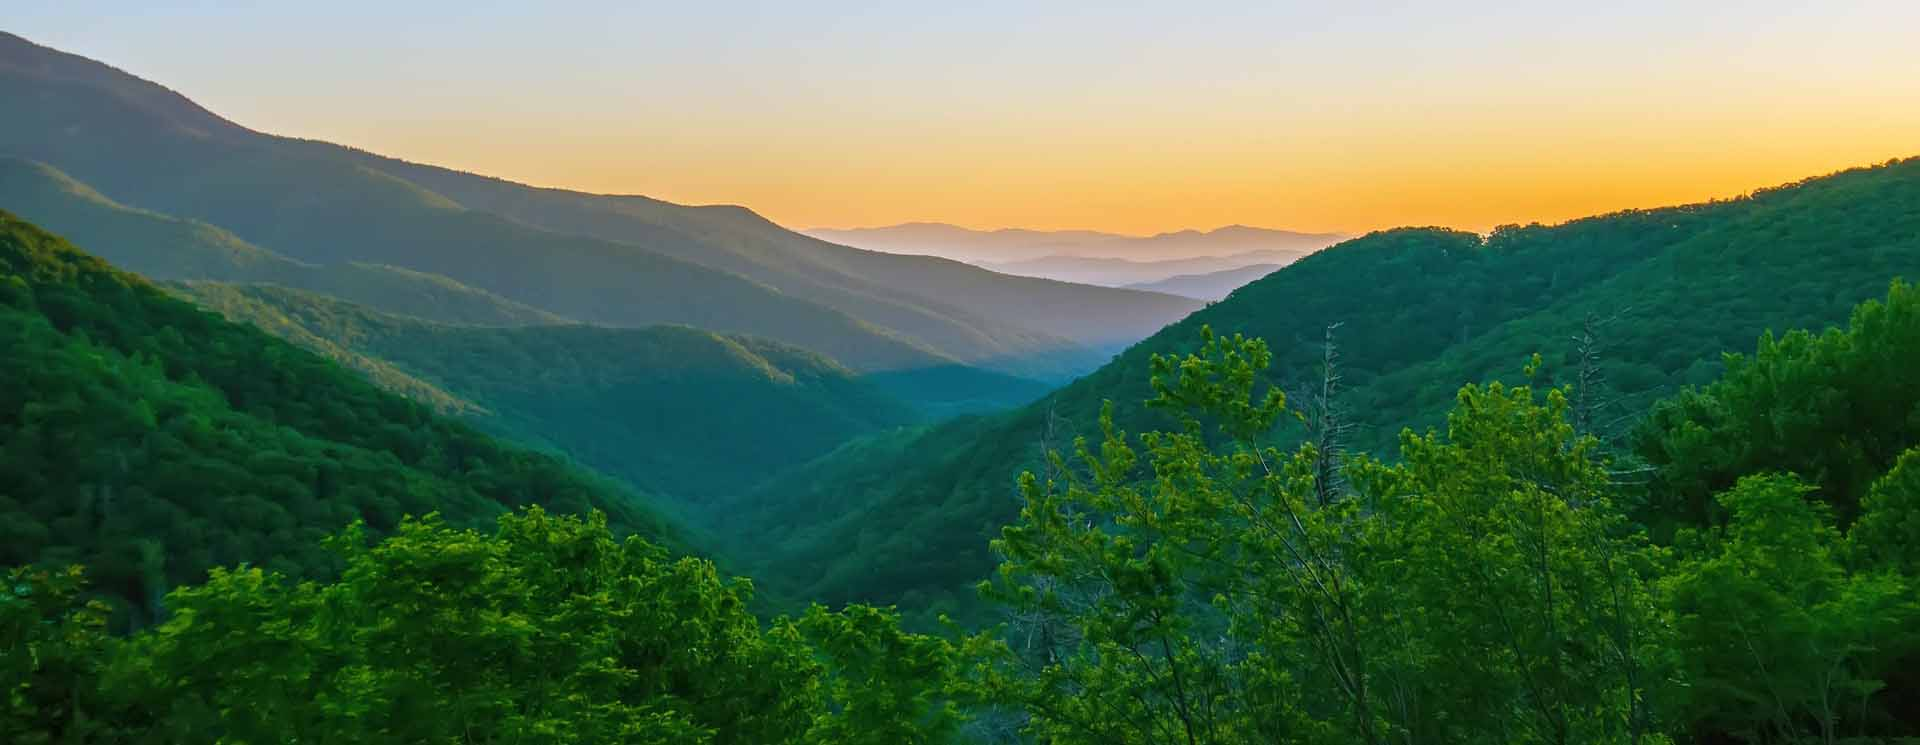 Tennessee - Cataracts / General / Comprehensive Ophthalmologist